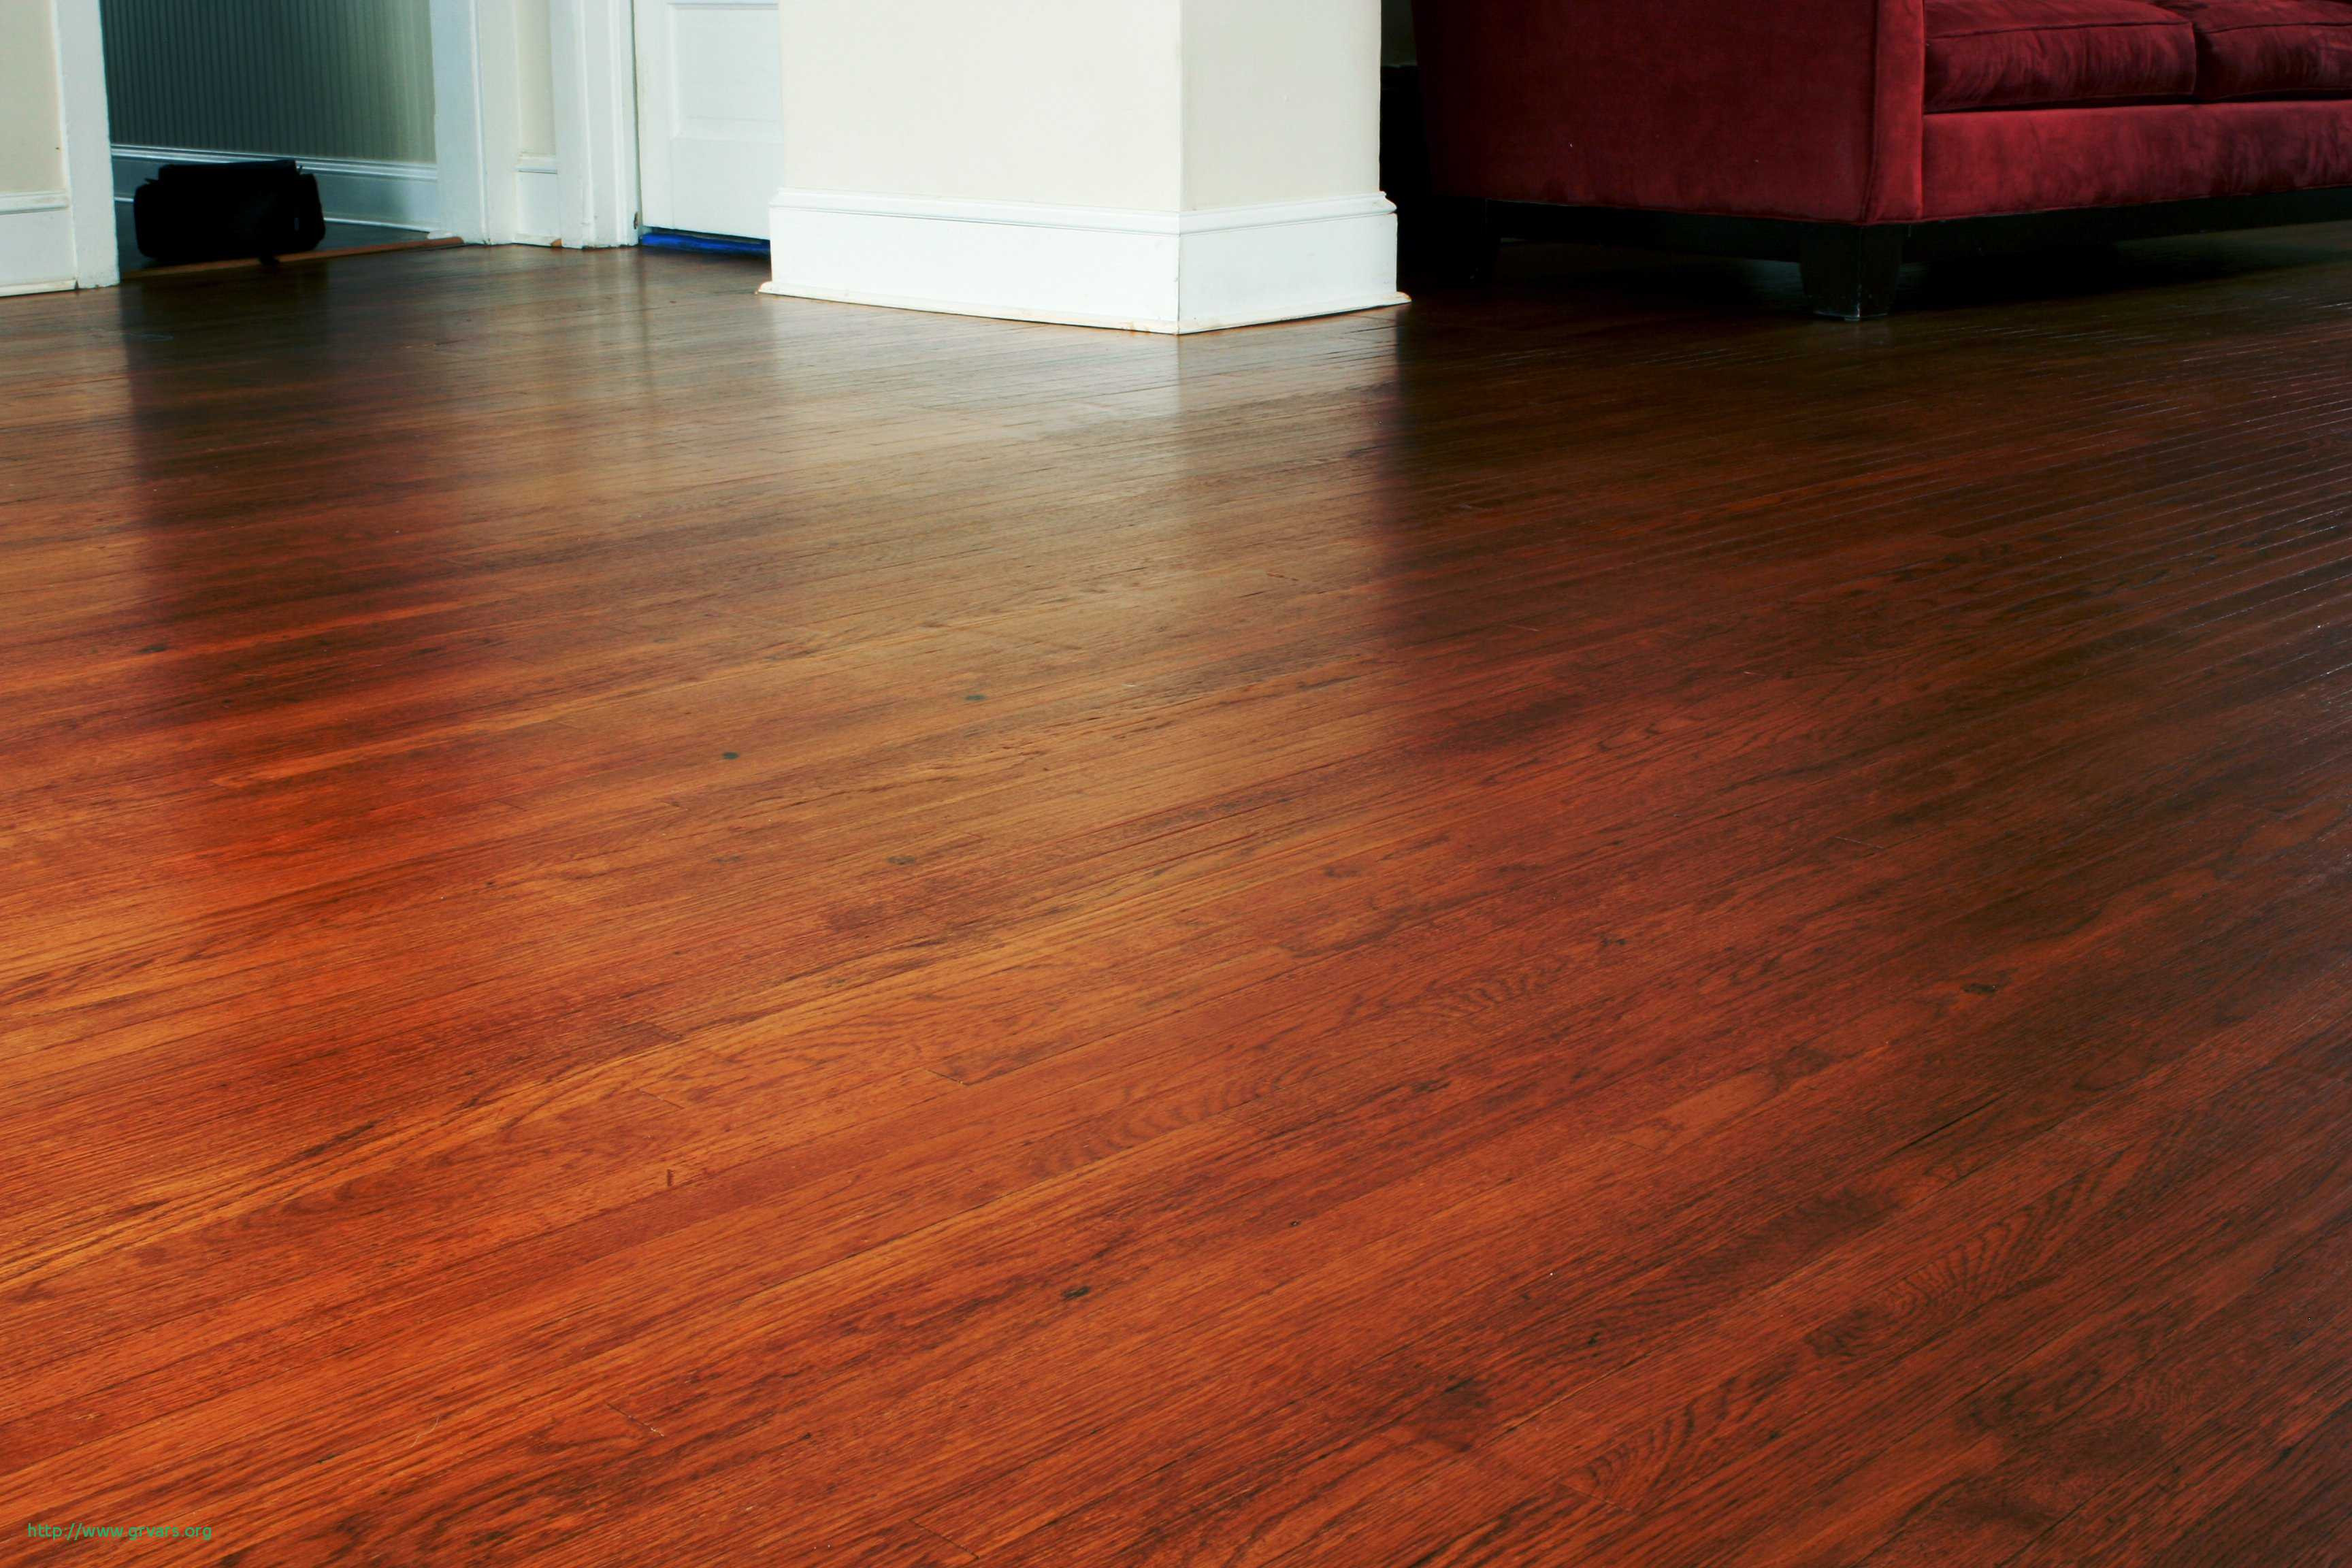 Engineered Hardwood Floors Charlotte Nc Of 17 A‰lagant Average Price for Hardwood Floor Installation Ideas Blog Inside Average Price for Hardwood Floor Installation Unique How to Diagnose and Repair Sloping Floors Homeadvisor